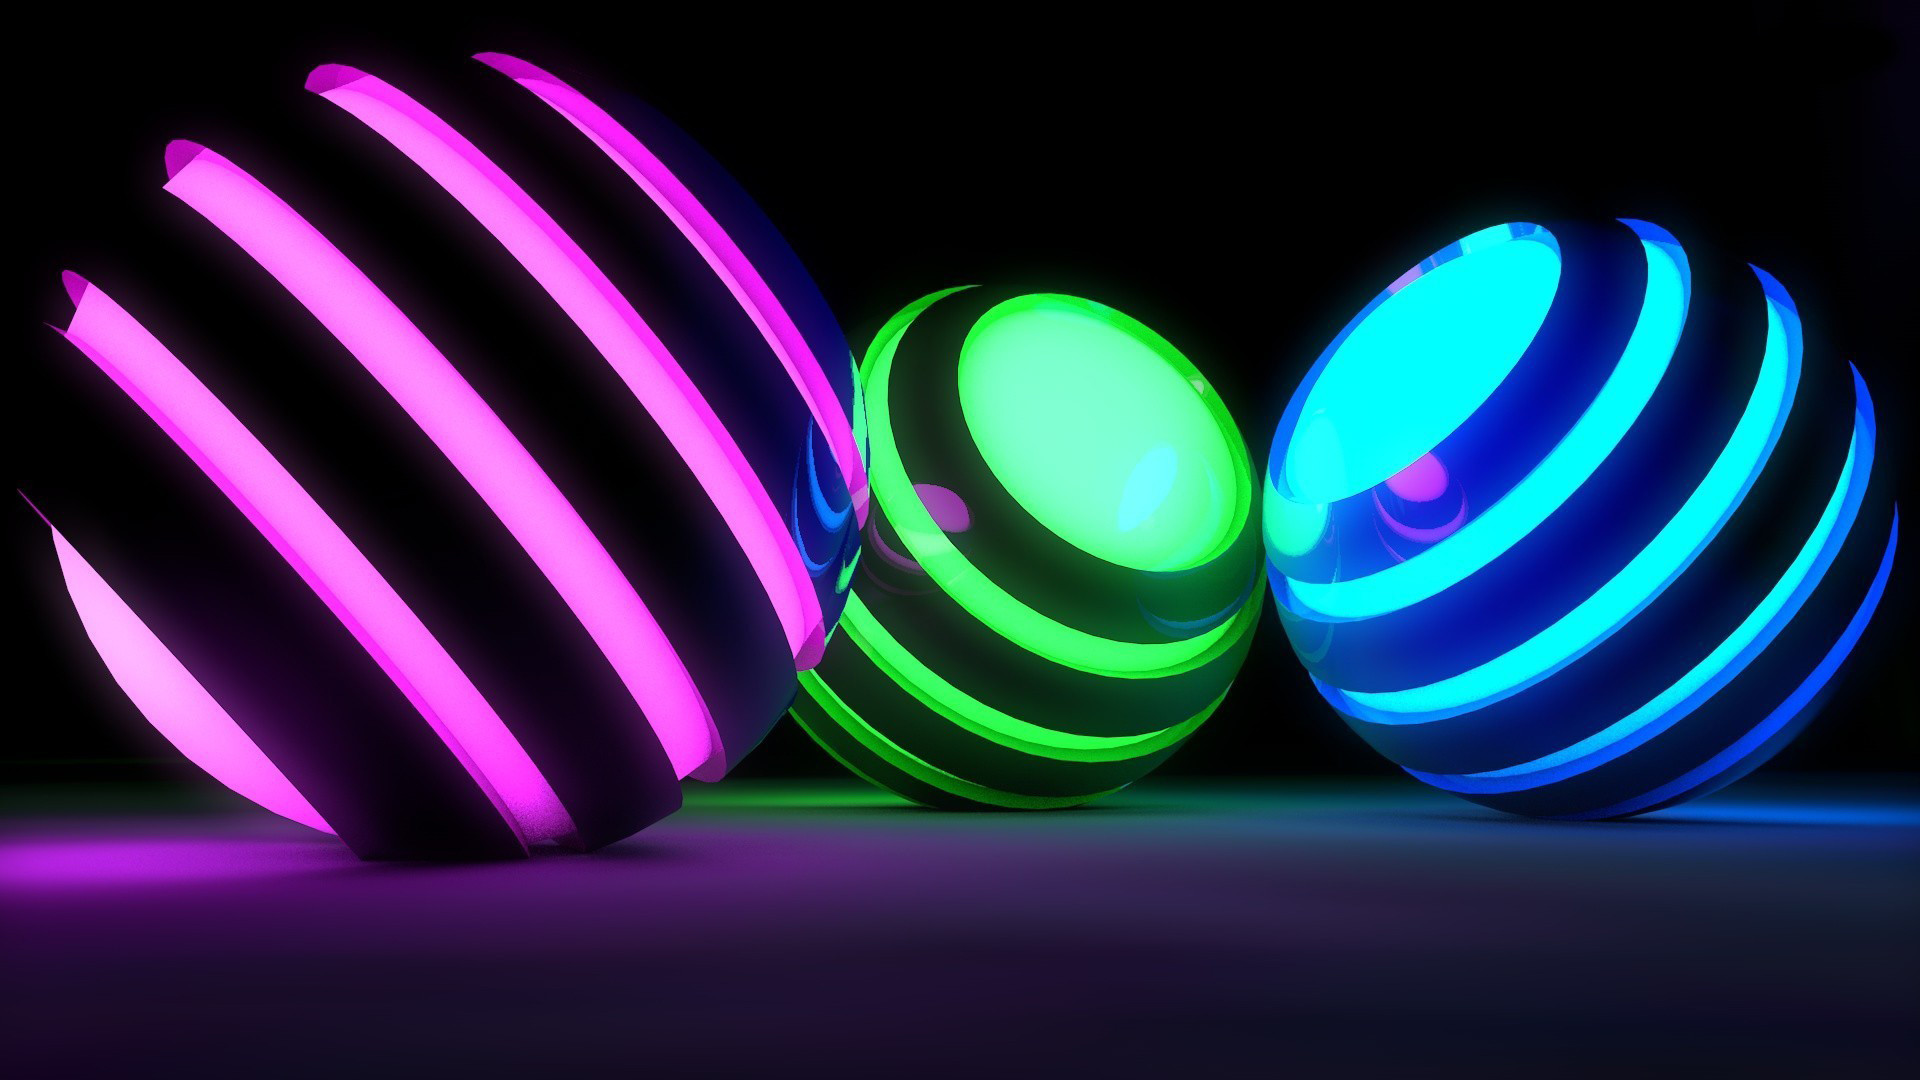 Neon Wallpapers : Find best latest Neon Wallpapers in HD for your PC  desktop background &